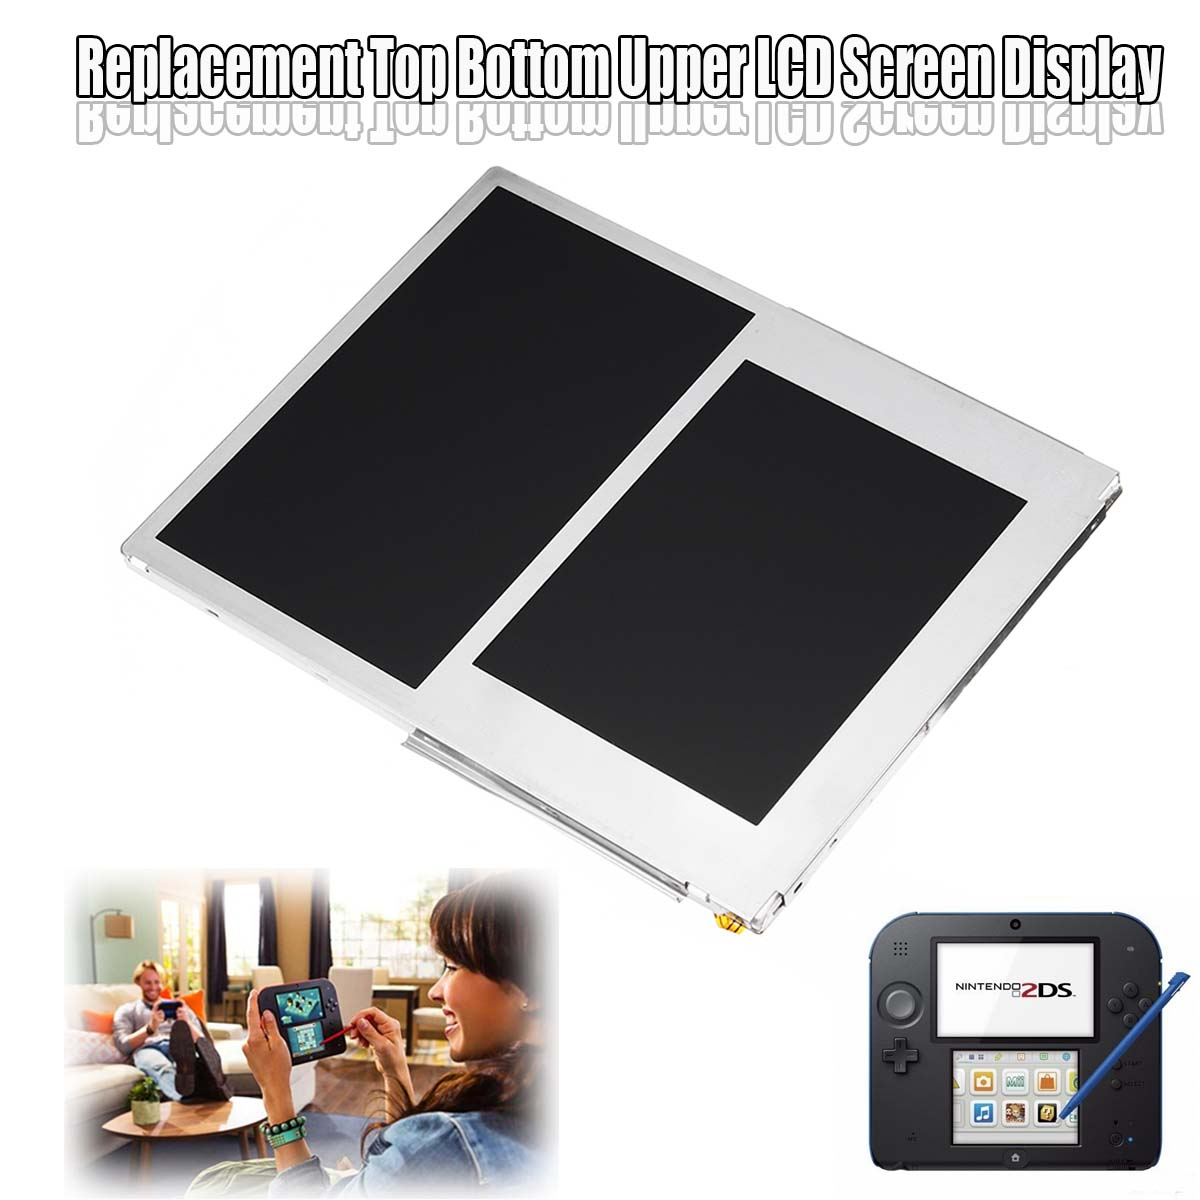 LCD Display Screen for 2DS Replacement Video Games Accessories Top Bottom Upper Lower Tou ch LCD Panel Only for 2DS 2013LCD Display Screen for 2DS Replacement Video Games Accessories Top Bottom Upper Lower Tou ch LCD Panel Only for 2DS 2013